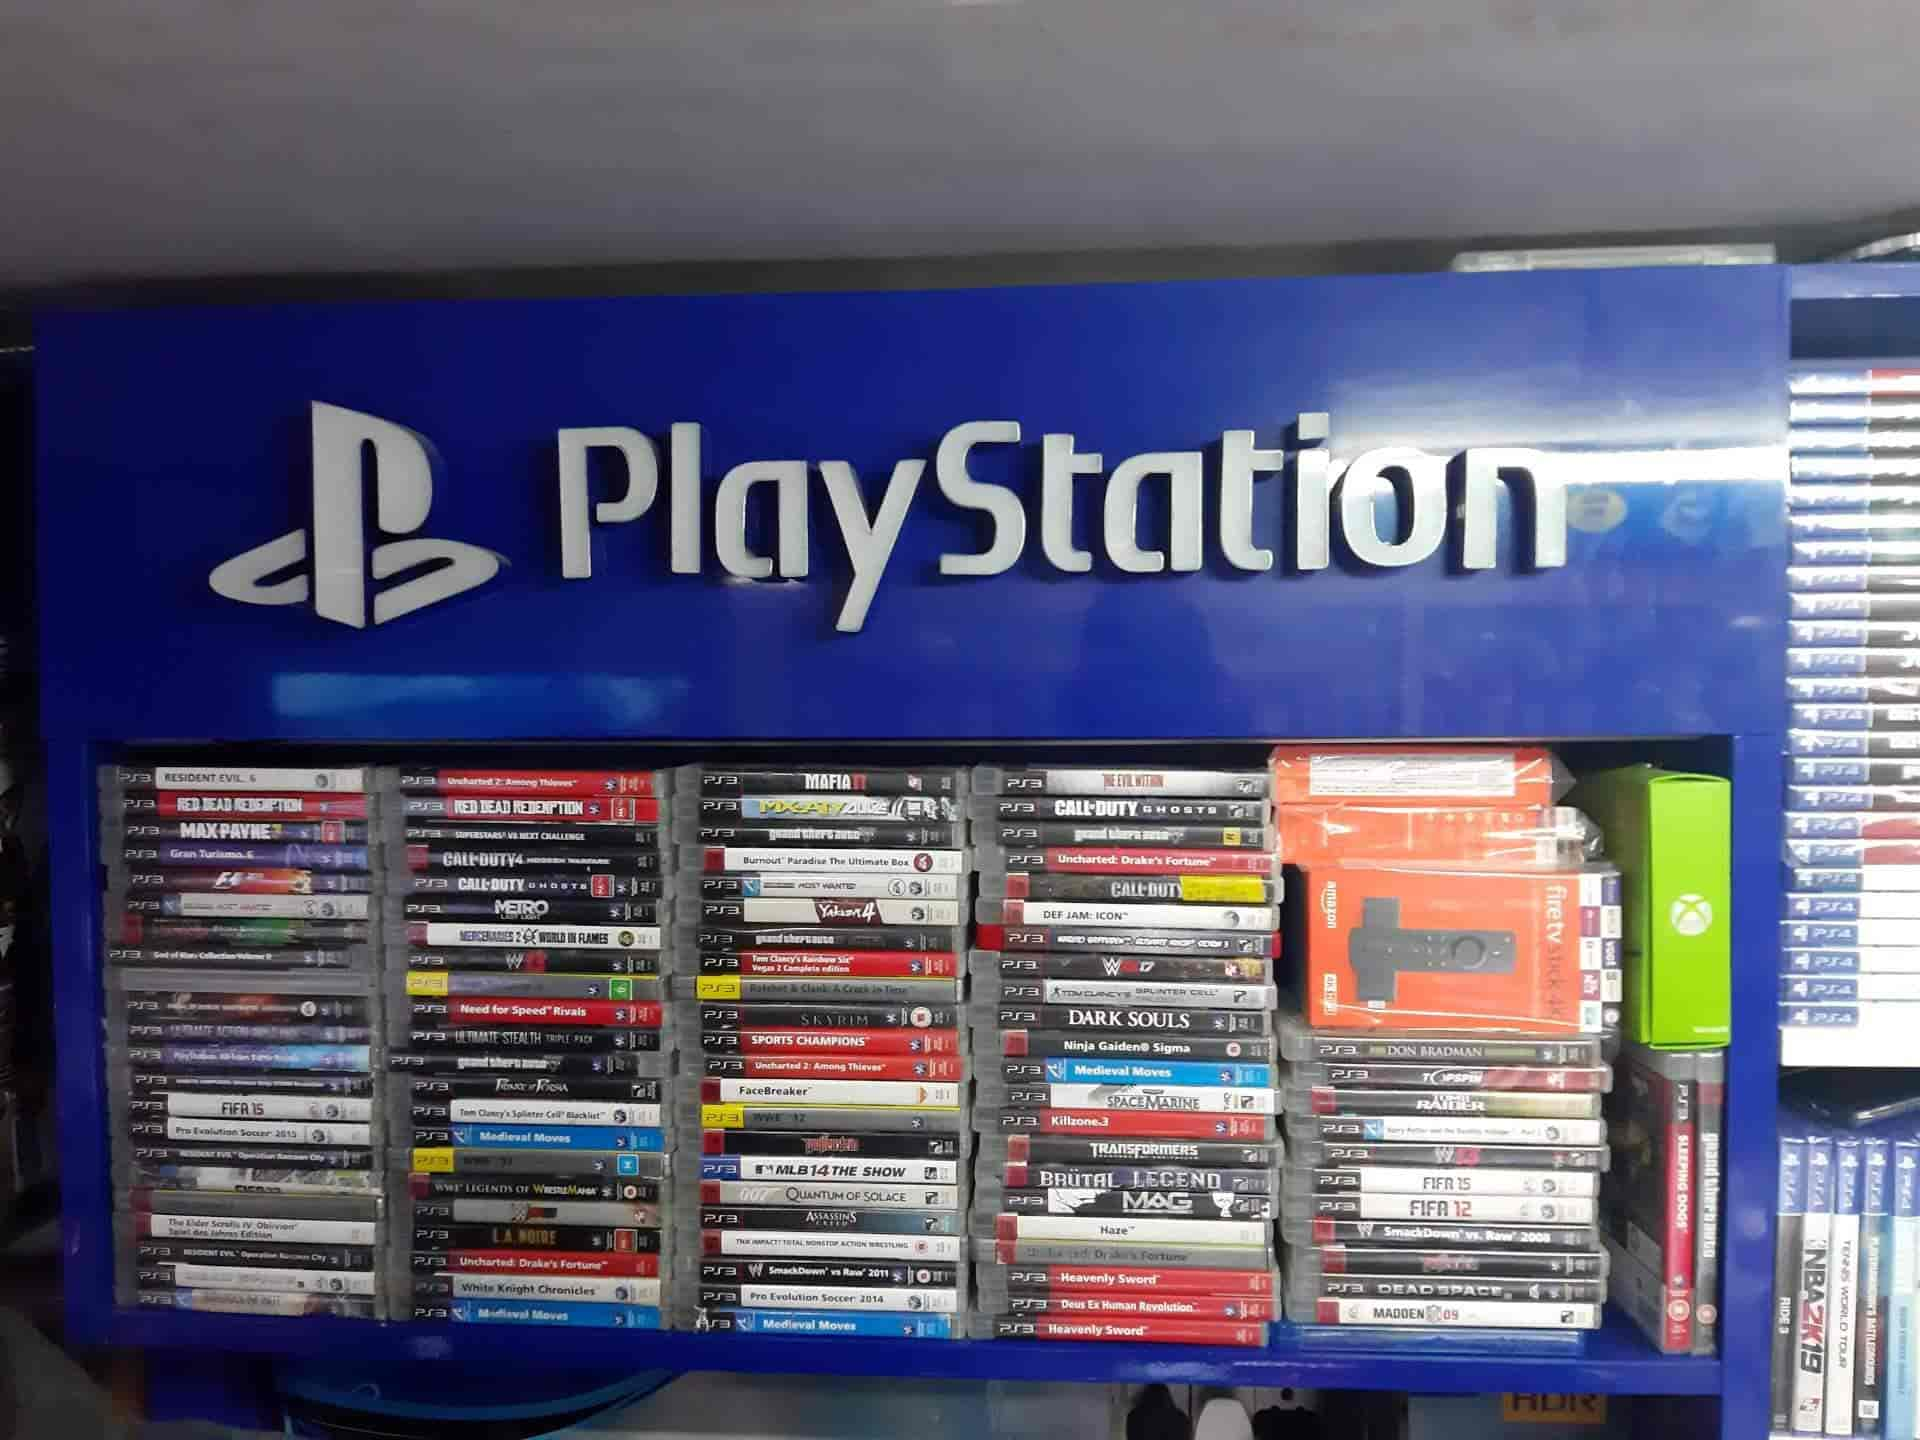 Chandigarh Video Games, Chandigarh Sector 35d - Gaming Console